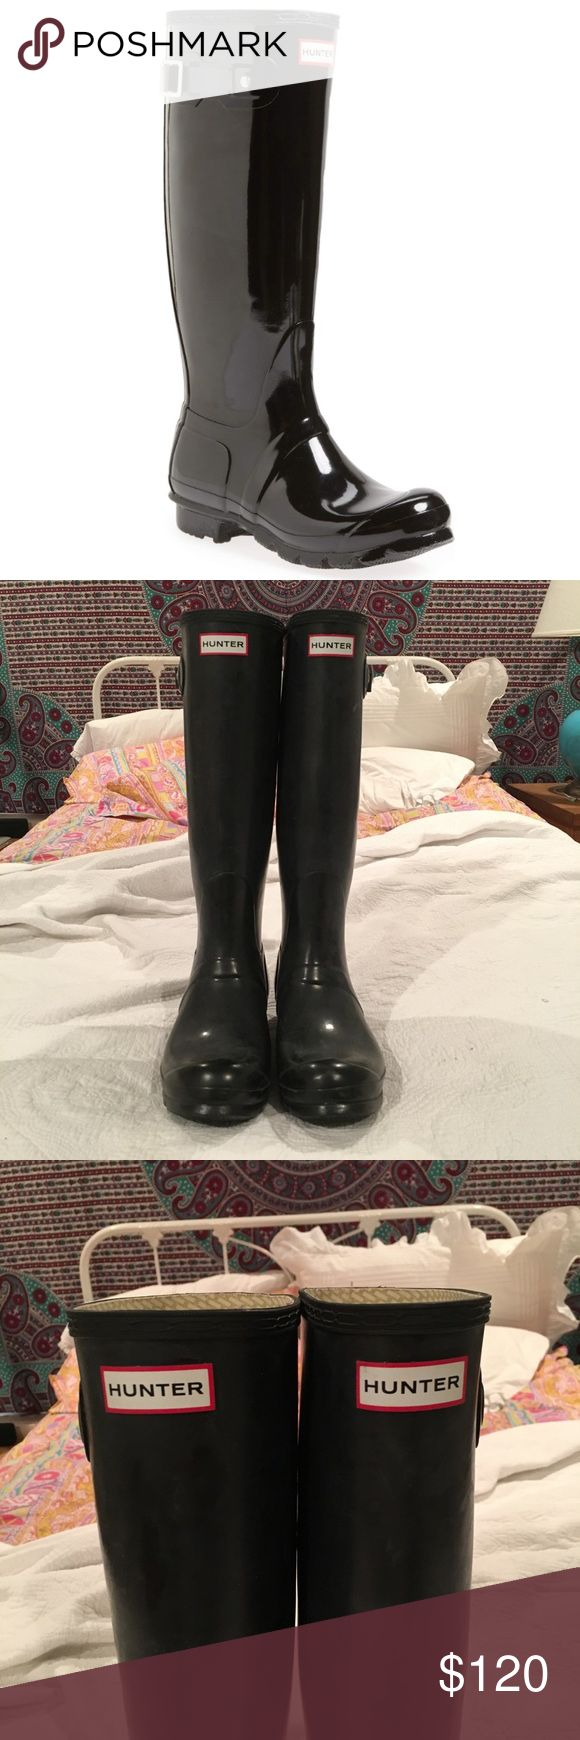 "Tall Hunter Rain Boots ""Original High Gloss"" size 10. Great shape, only worn a handful of times. Paired great with the Hunter Boot socks for sale in my closet! Hunter Boots Shoes Winter & Rain Boots"